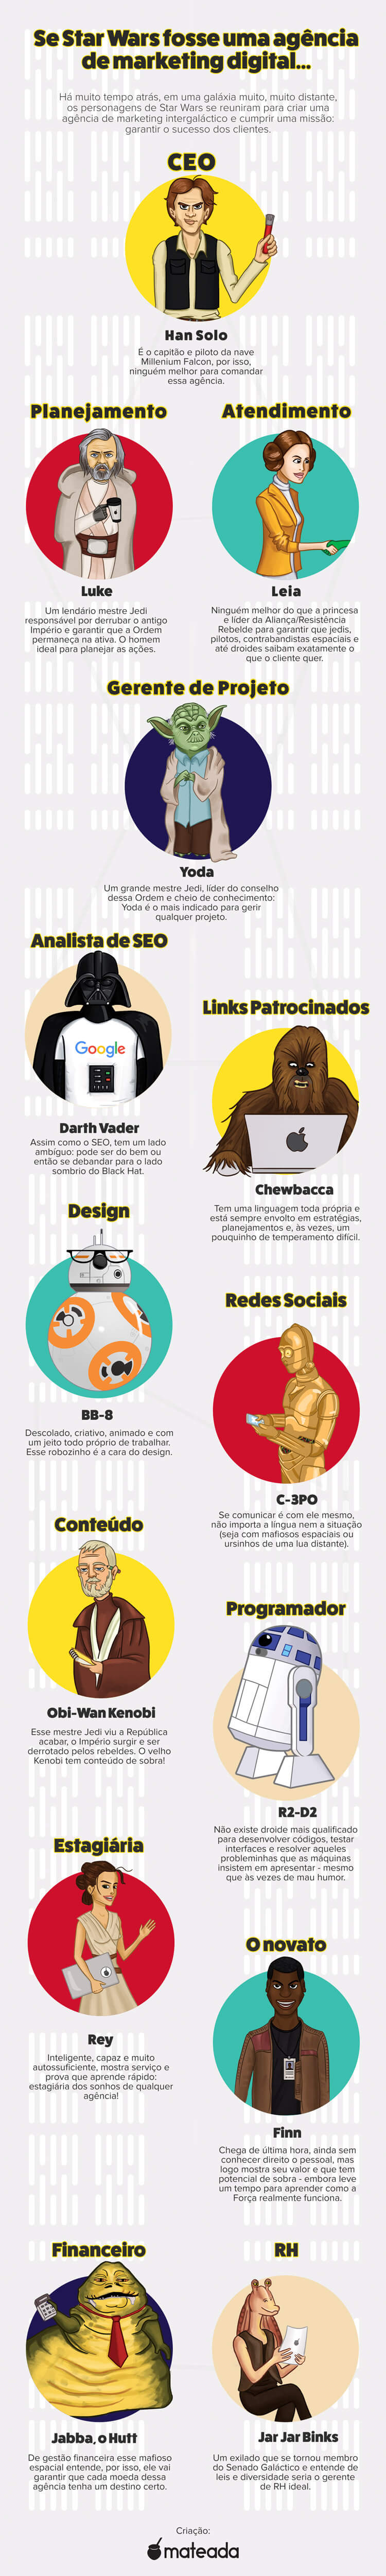 Se Star Wars fosse uma agência de marketing digital